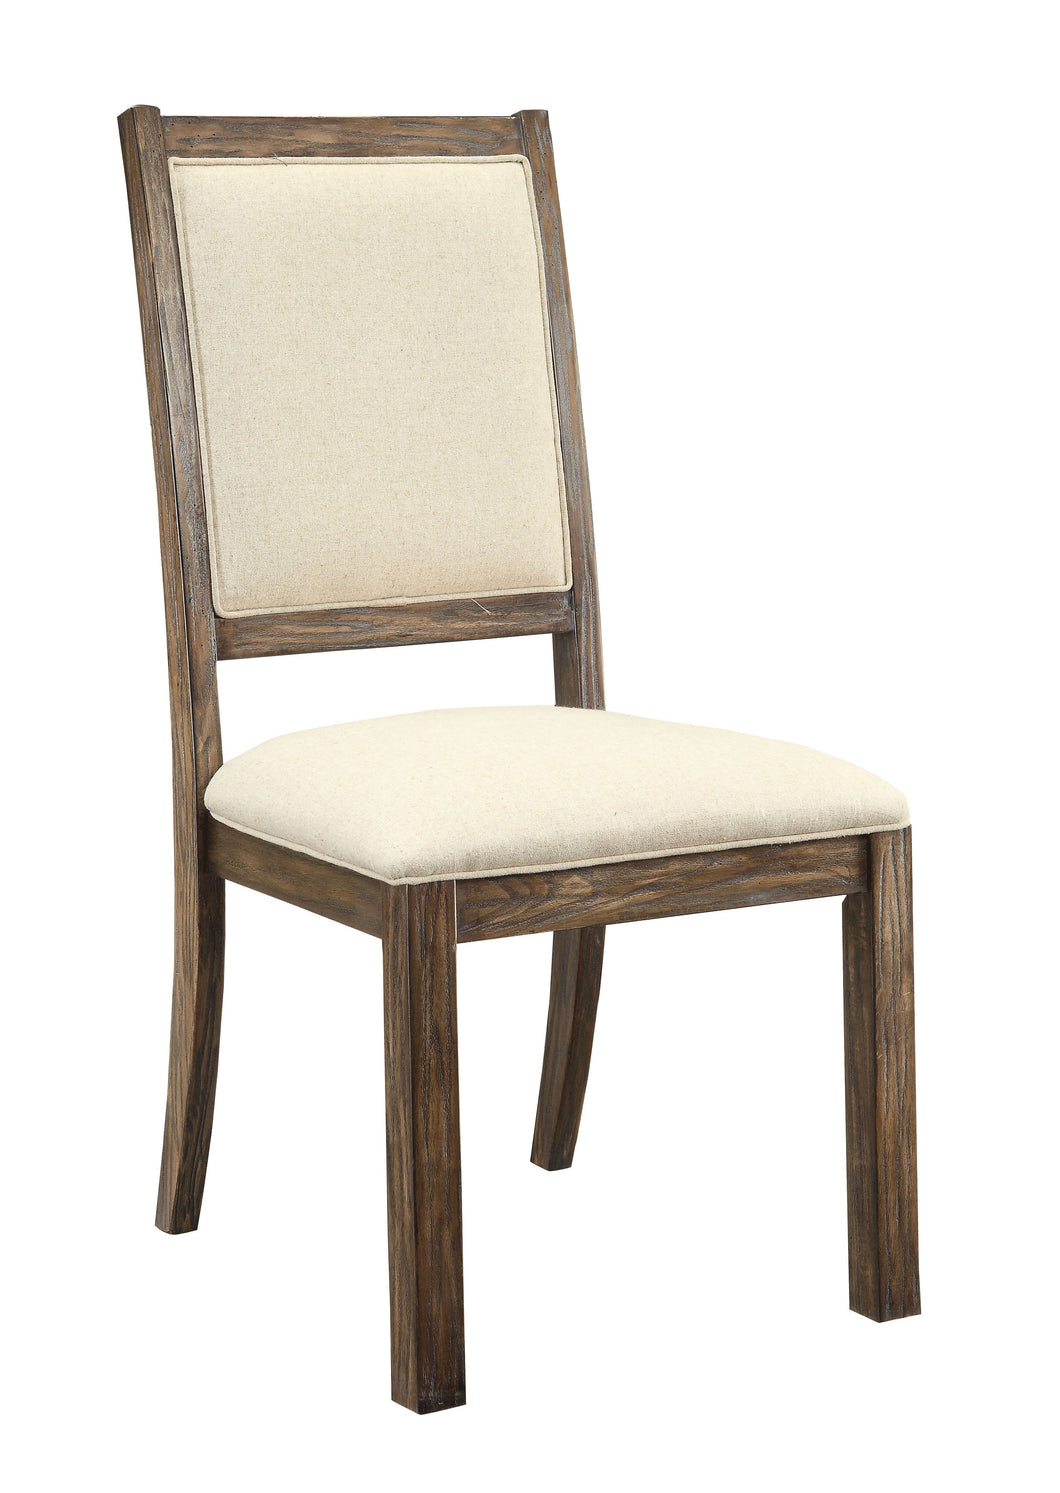 Kylie Industrial Rustic Oak Padded Fabric Dining Chair (Set of 2)